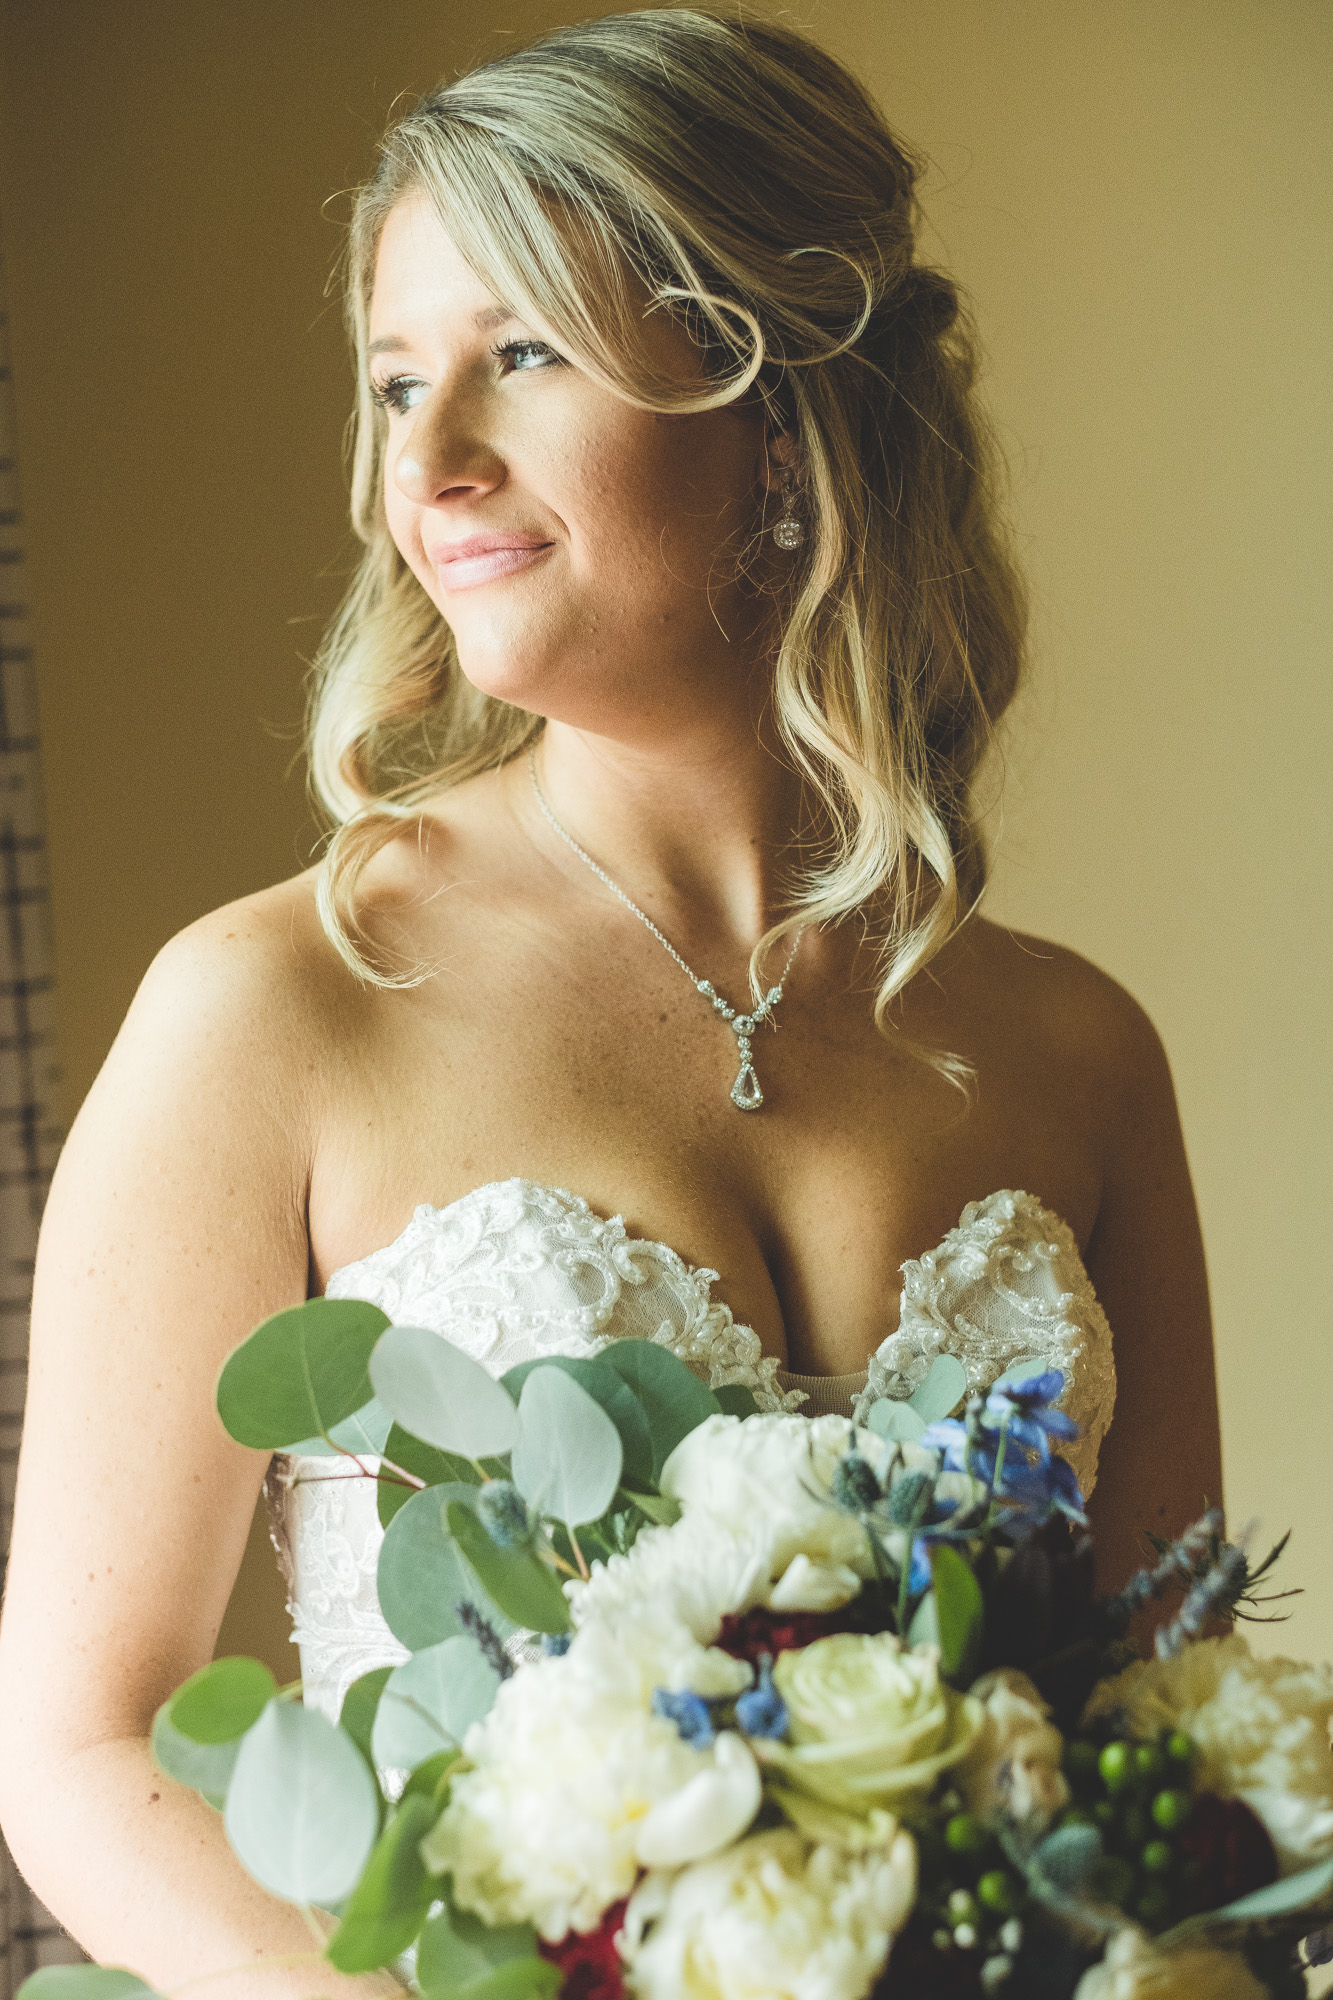 Bride-looking-out-window-holding-flowers